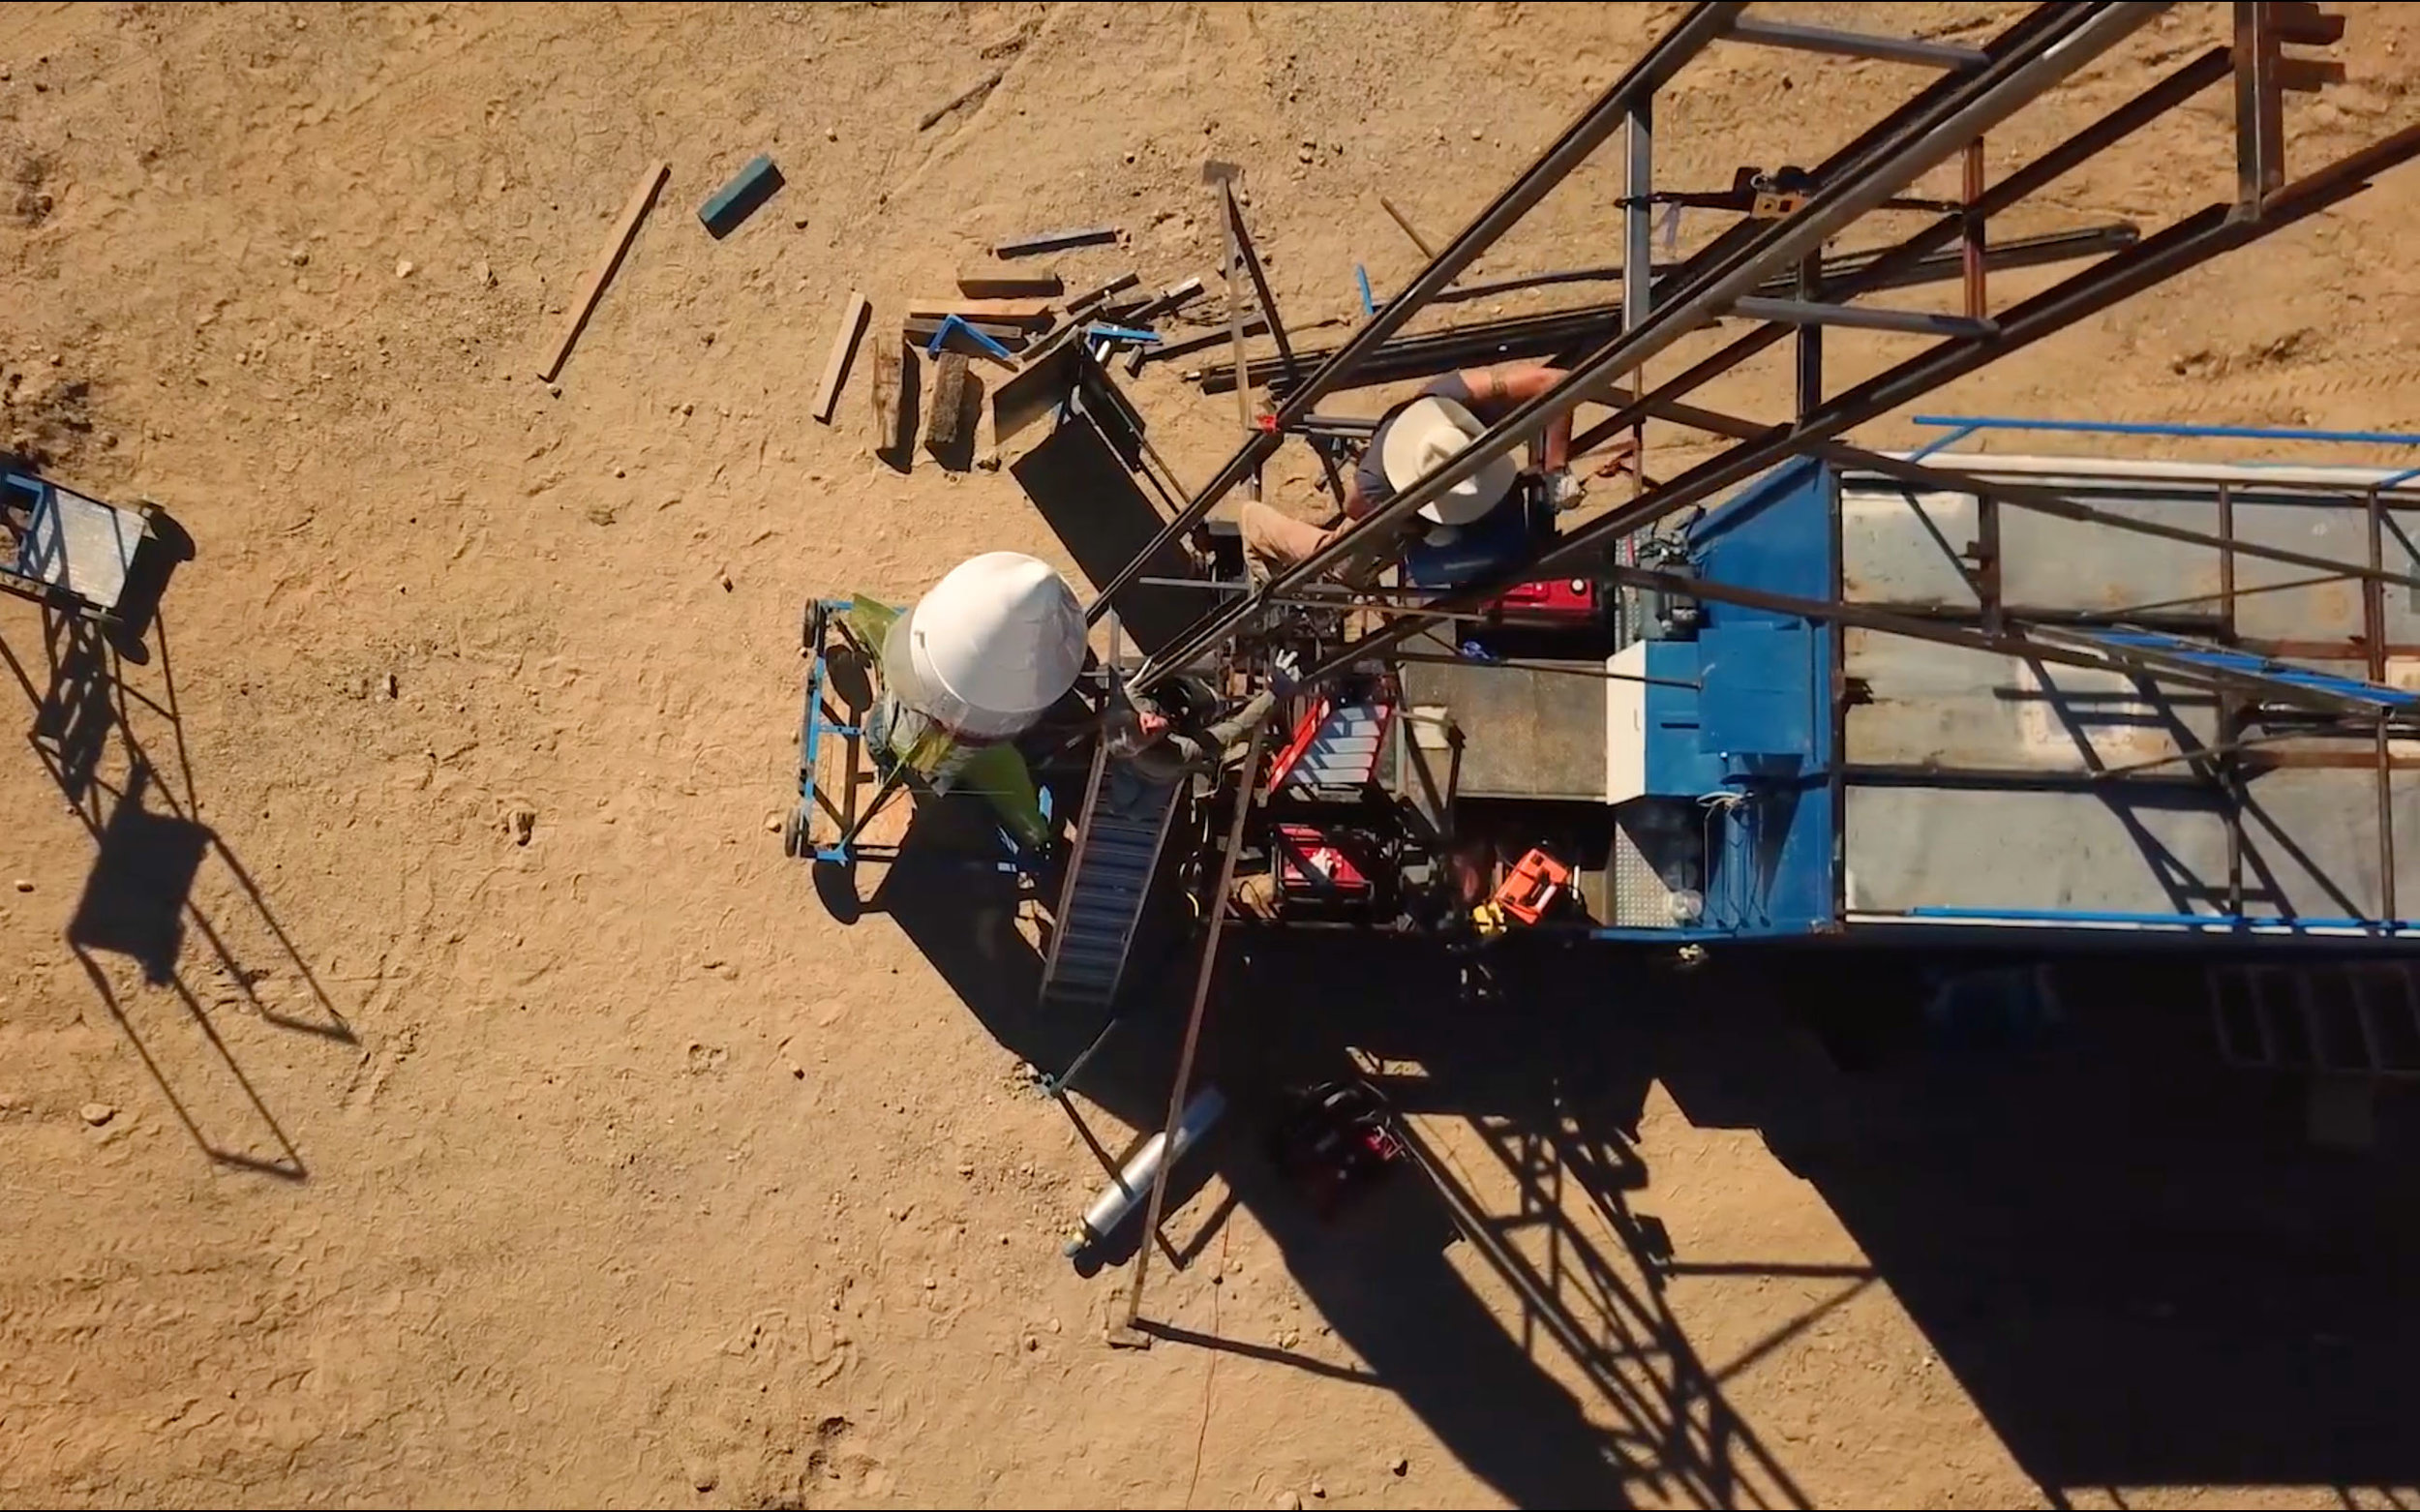 Waldo Stakes climbs up the rocket launch ramp to secure a welder to use as 'Mad Mike' watches from below.